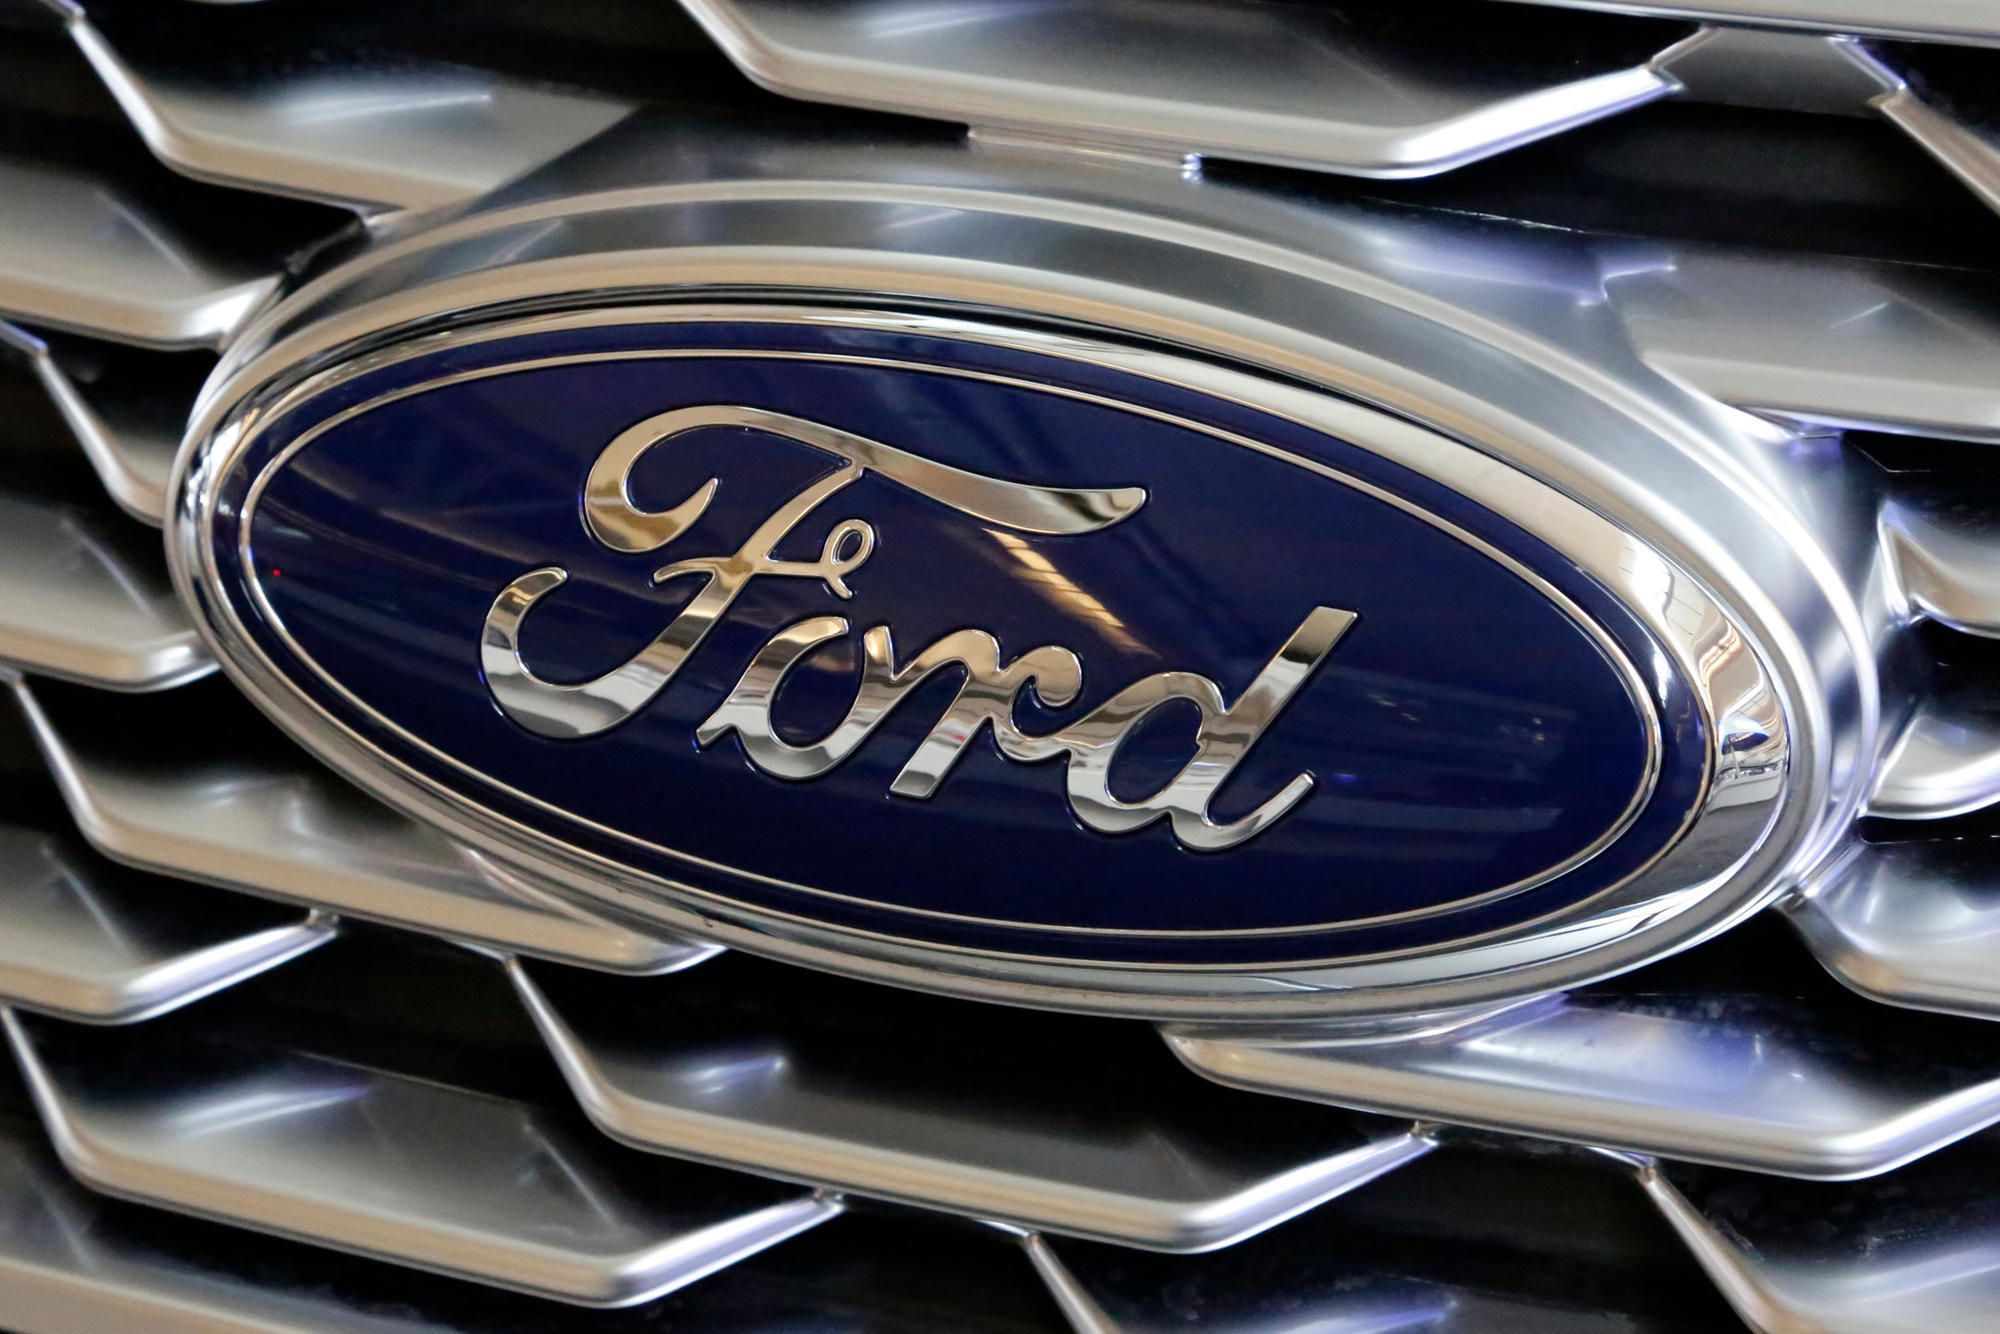 Ford To Discontinue All Cars Except For Mustang And Focus